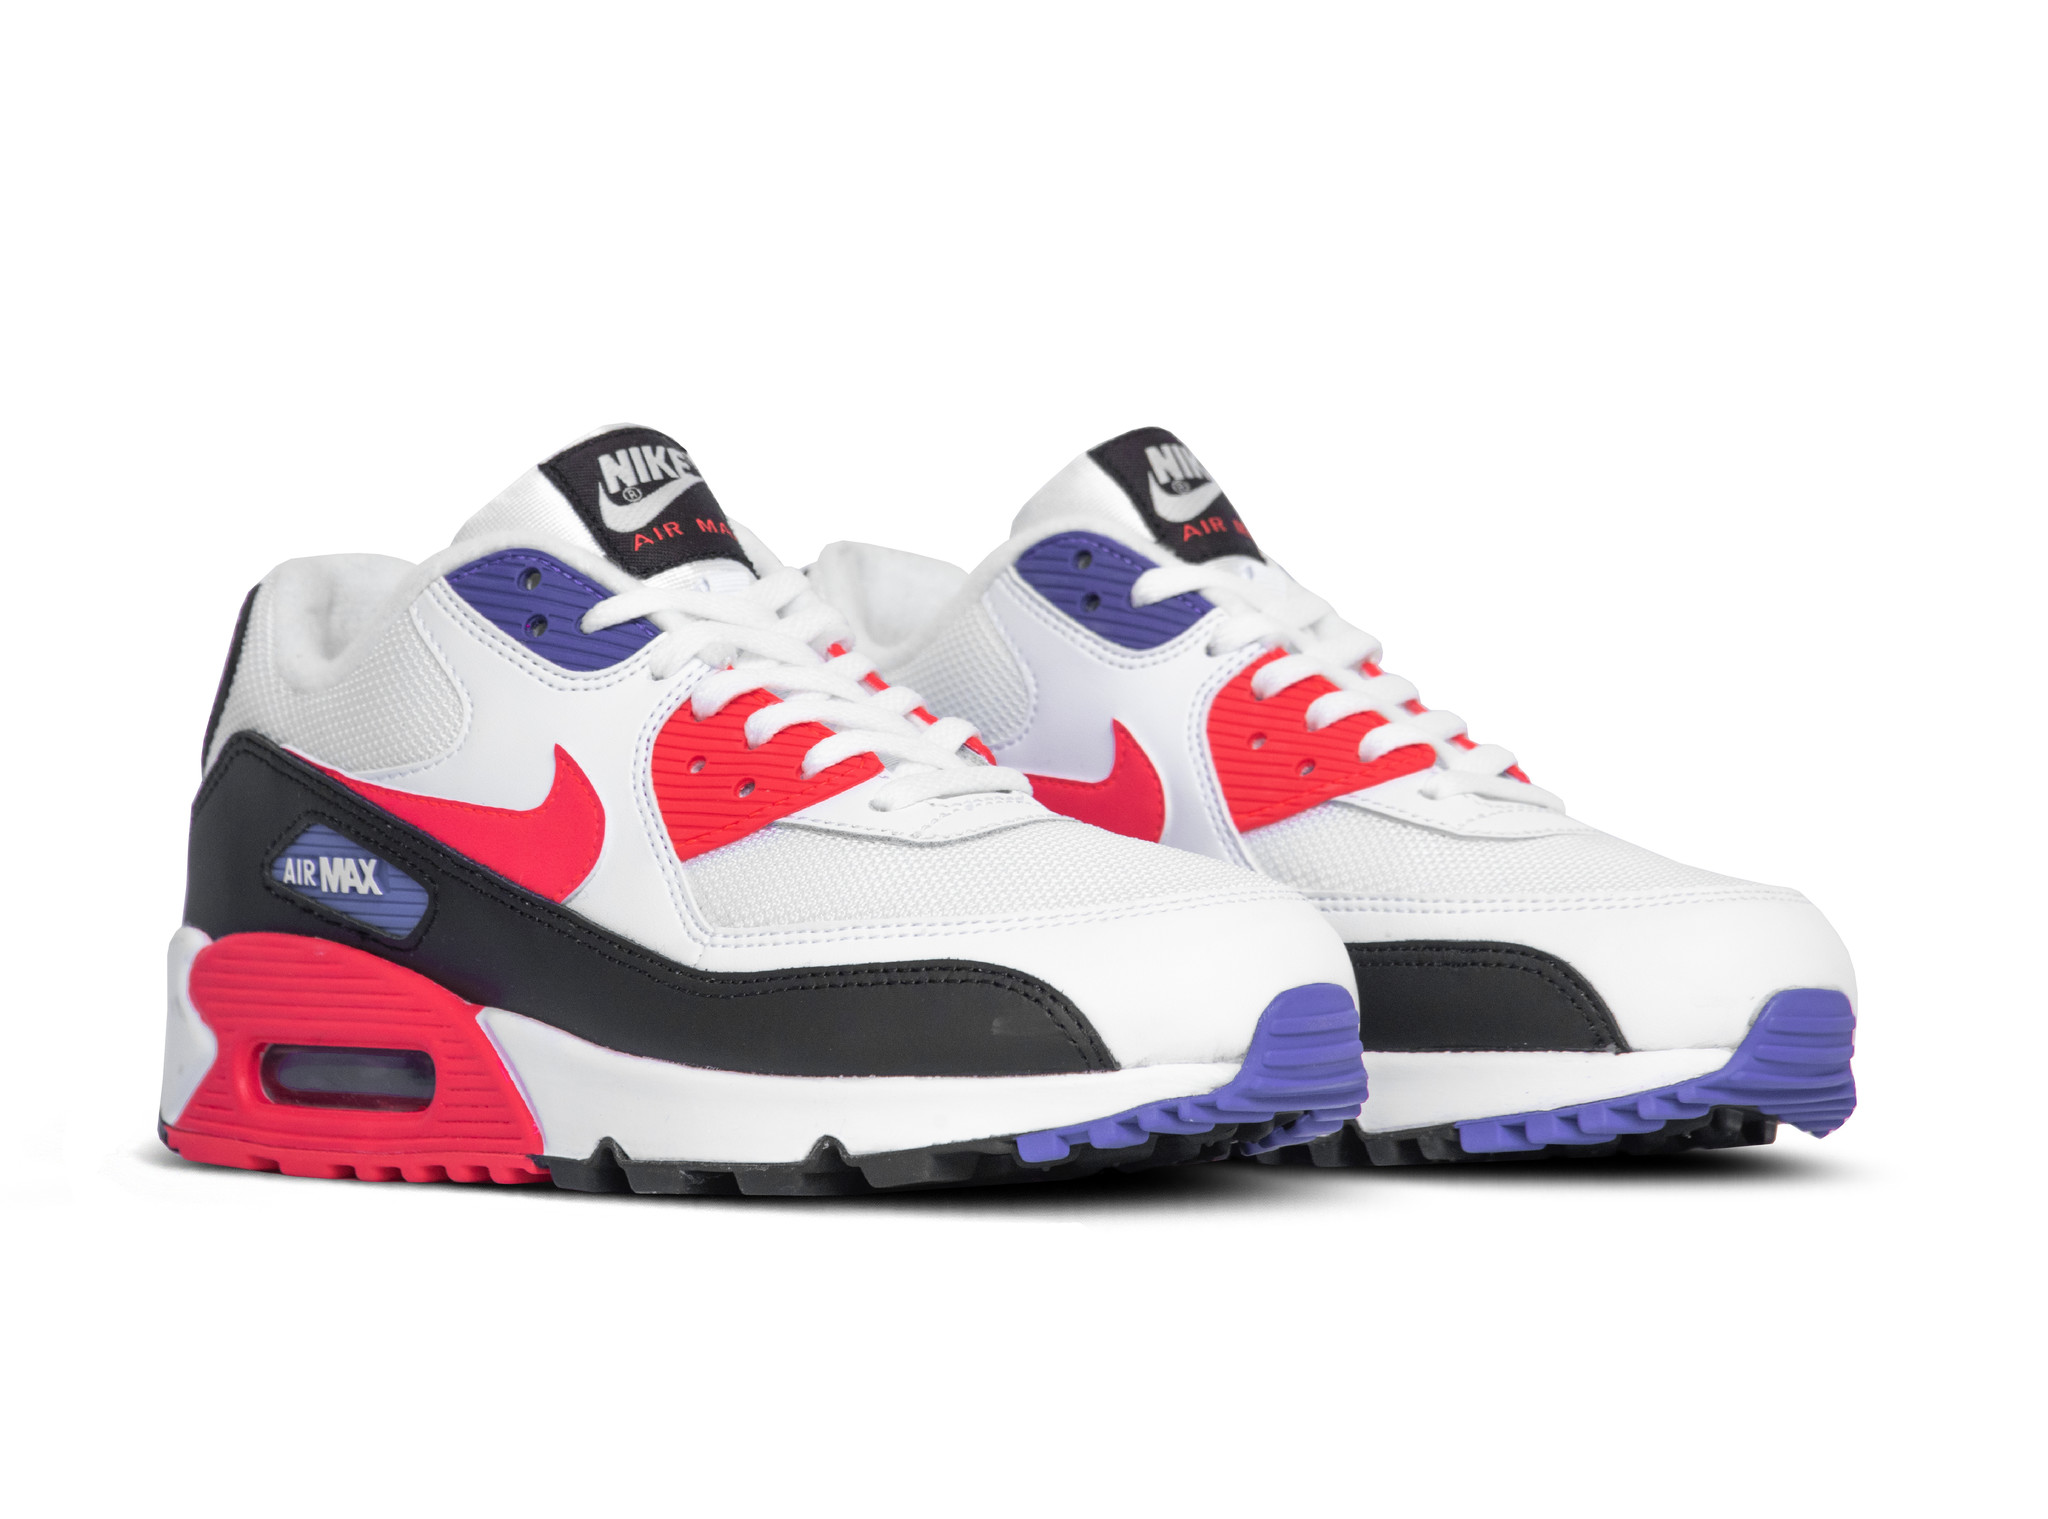 Details about Nike Air Max 90 Shoes Womens Size 7 White, Off White, Lavendar Leather